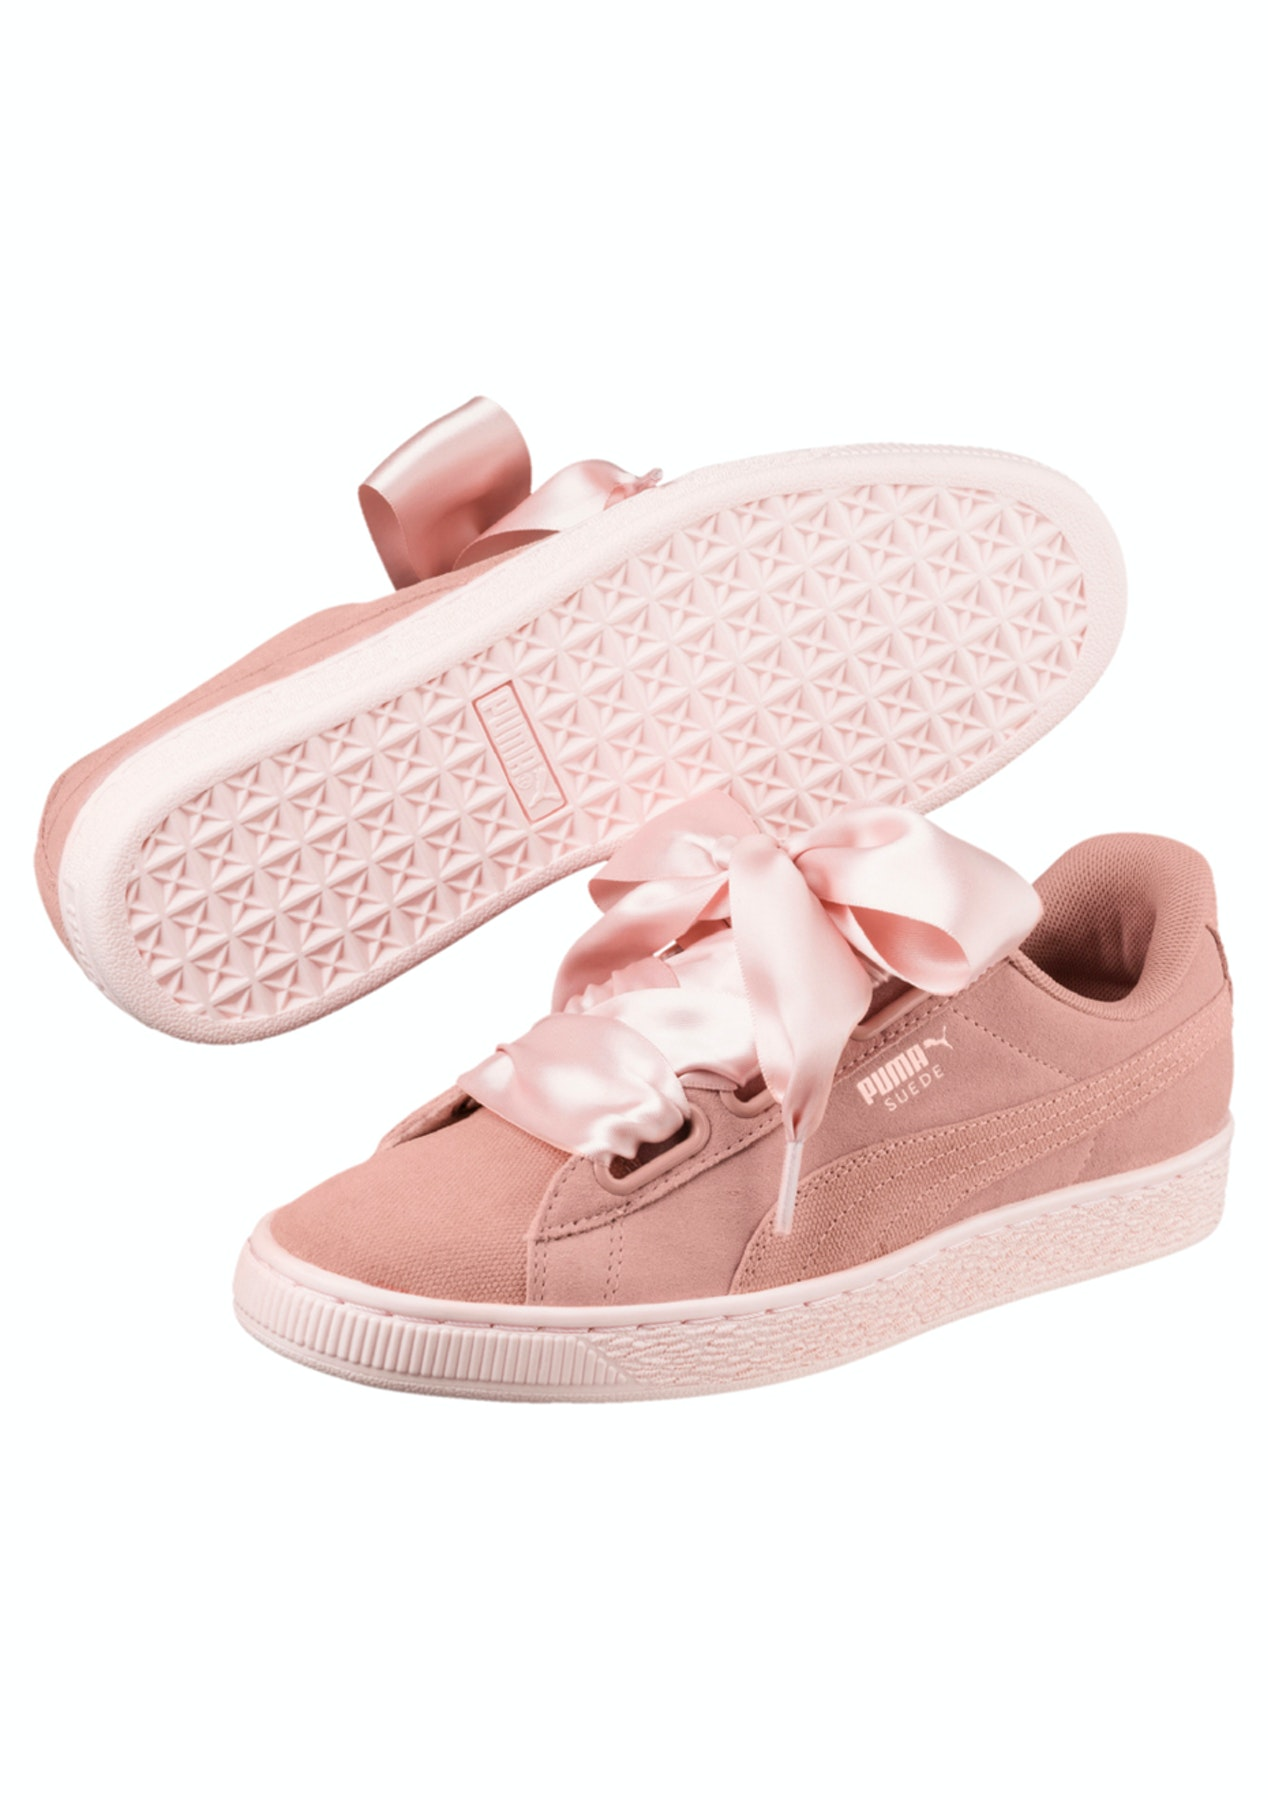 3b11b366e24 Puma Womens - Suede Heart Pebble Peach - Puma Womens   Kids up to 63% Off -  Onceit